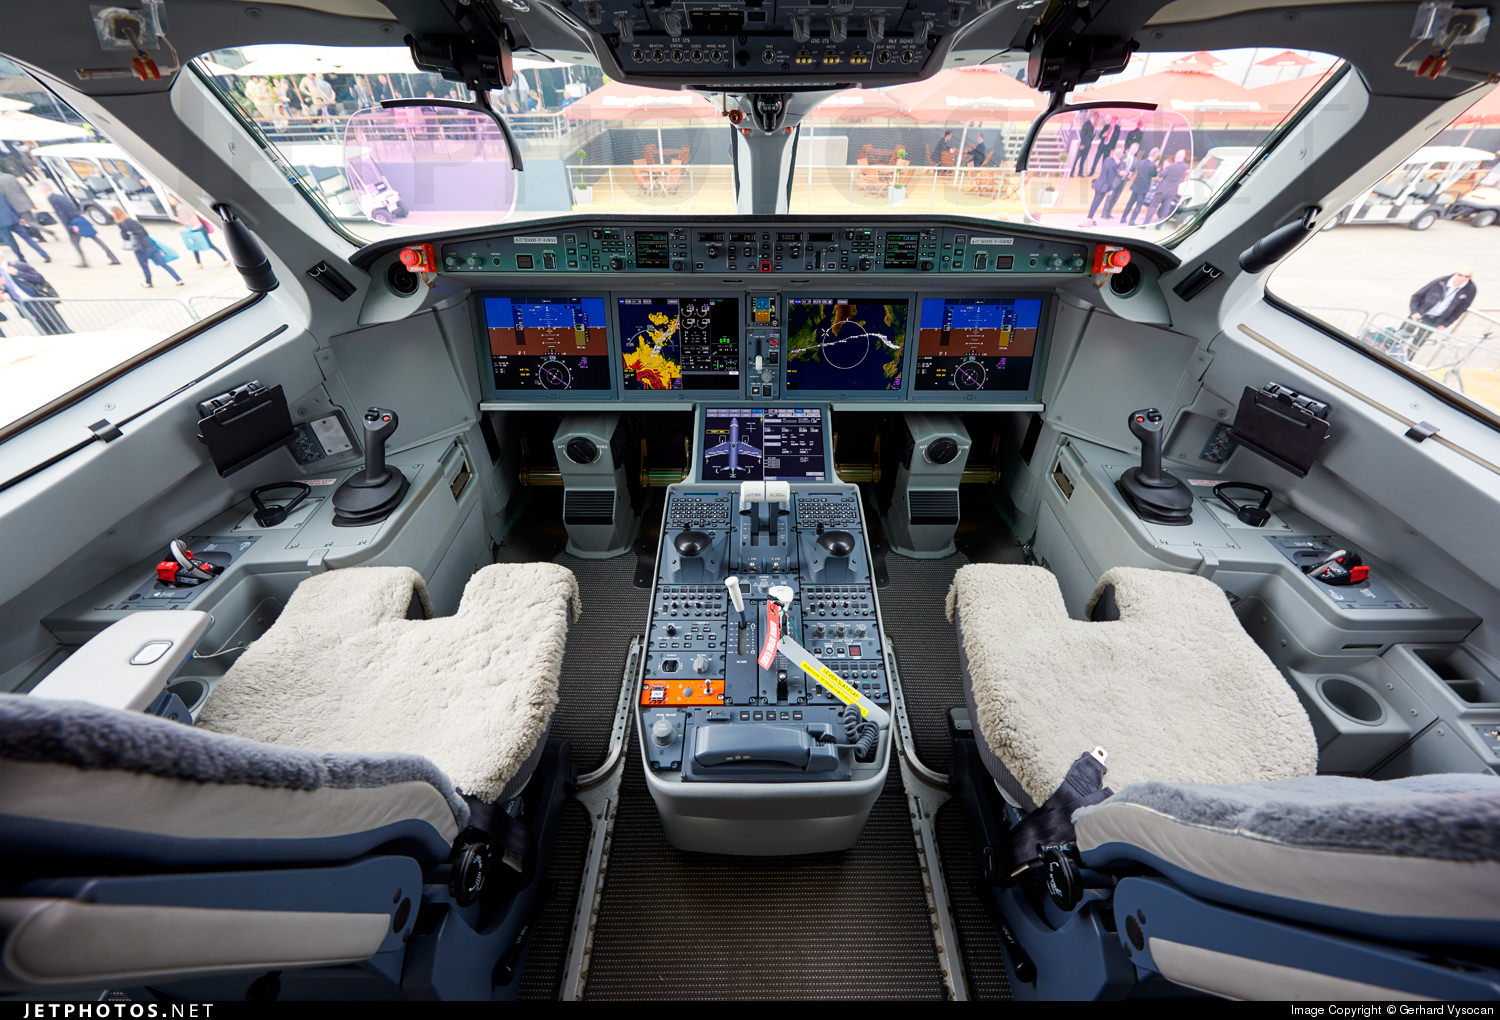 The CS100 flight deck